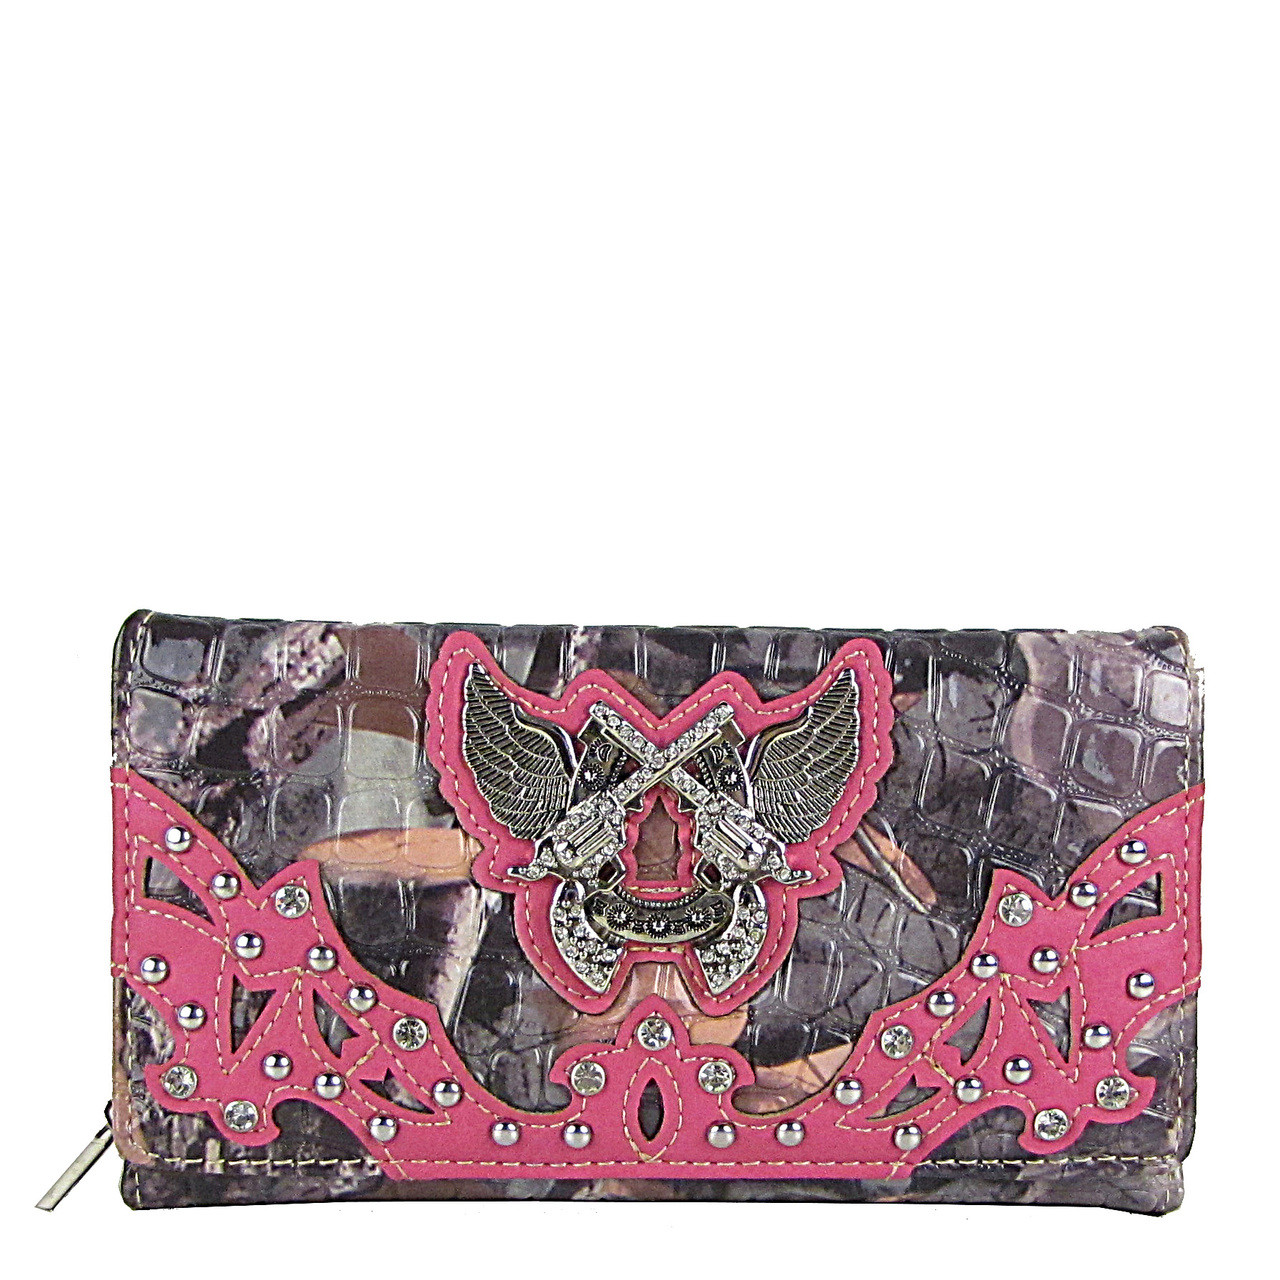 HOT PINK CAMO RHINESTONE HORSESHOE WITH WINGS AND PISTOLS LOOK CHEKCBOOK WALLET CB1-1279HPK